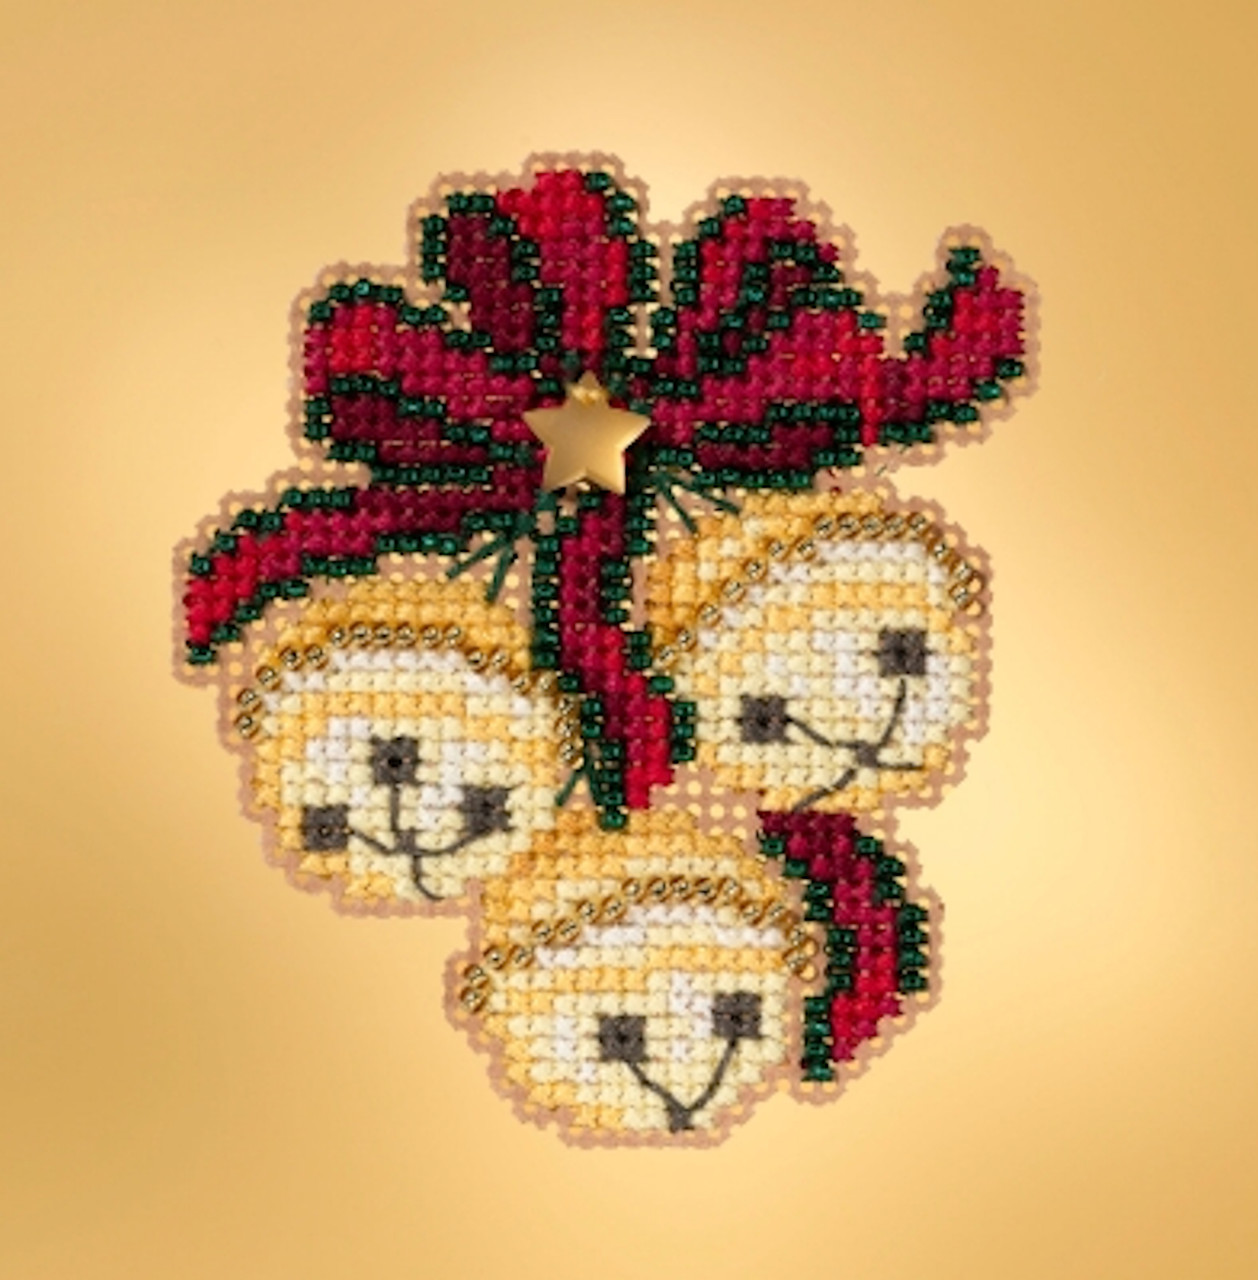 Mill Hill 2019 Winter Holiday Collection - Jingle Bell Trio Ornament